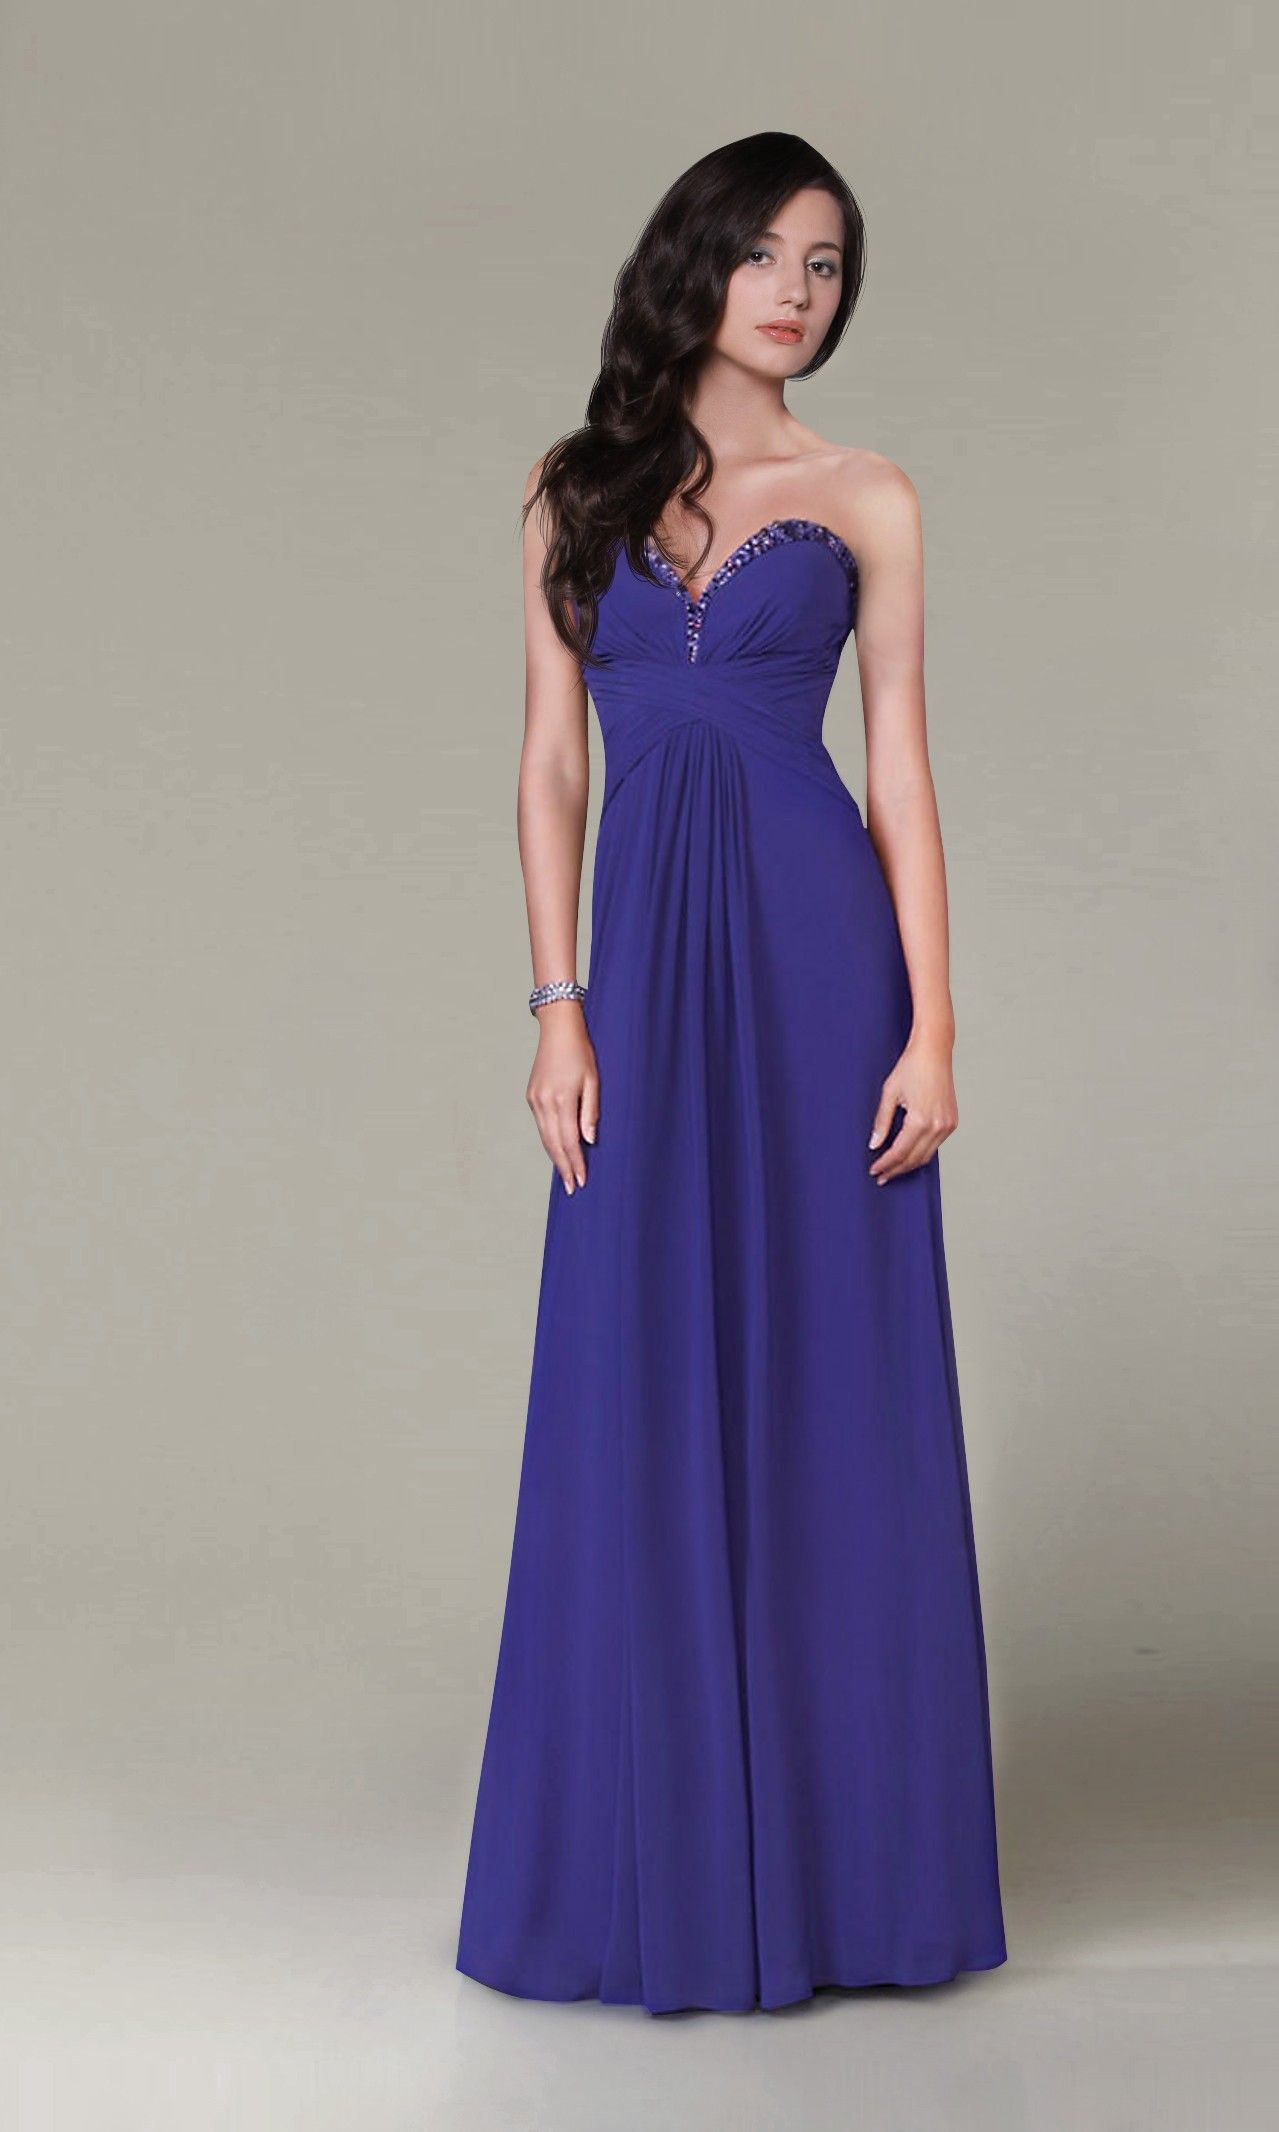 Blue gown for wedding dresses and the fashion world development blue gown for wedding dresses and the fashion ombrellifo Images